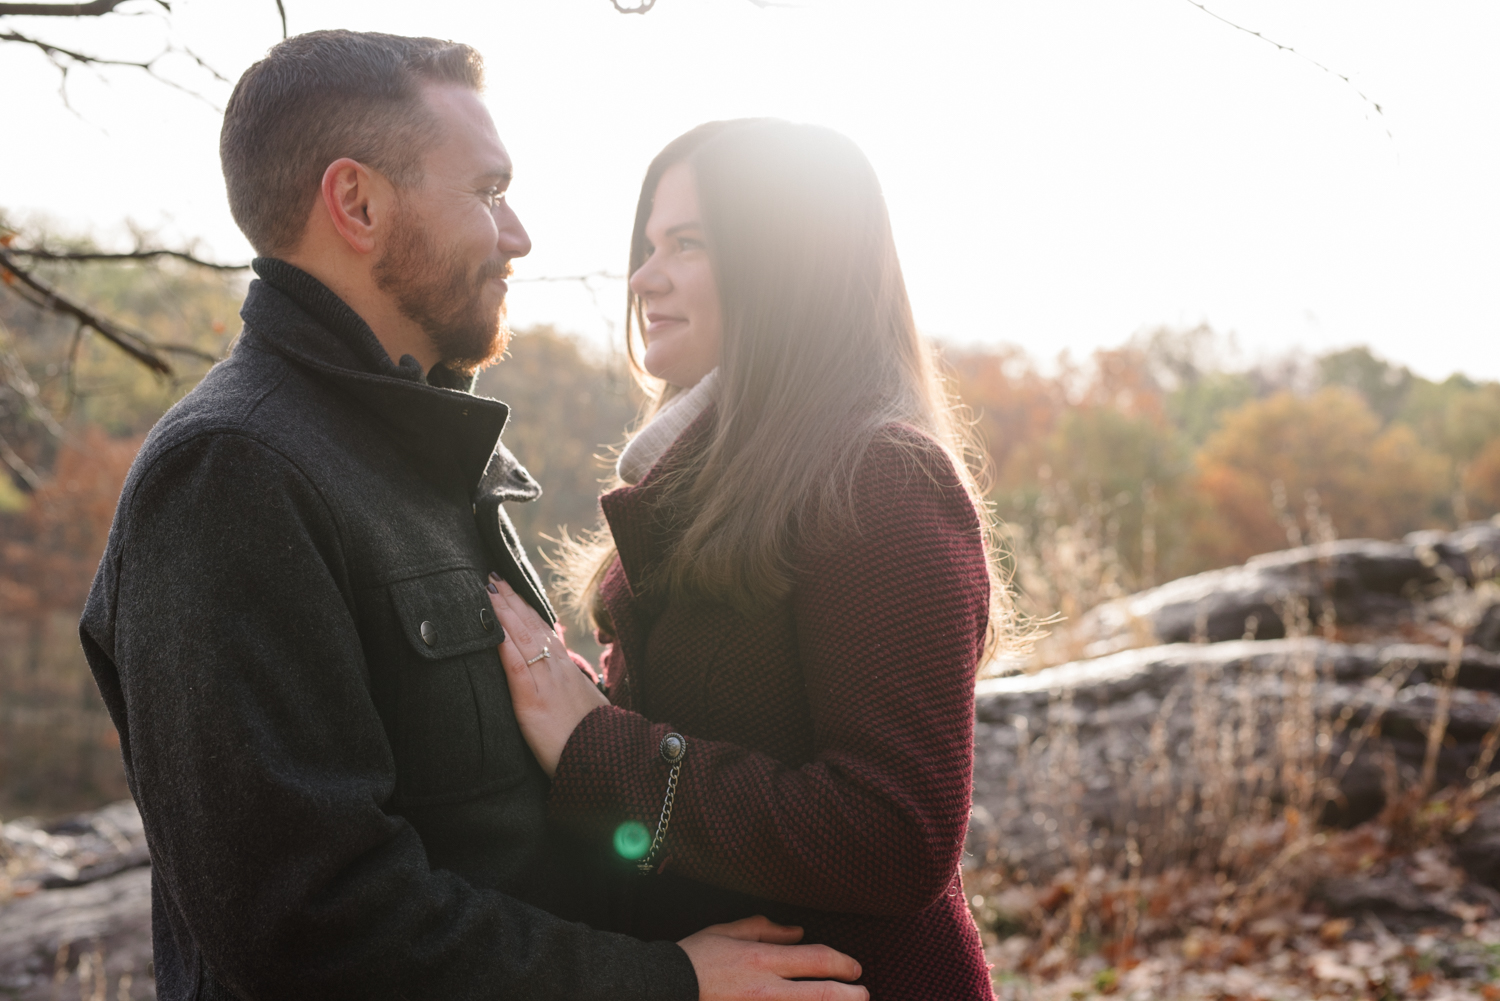 Amy+Brian- Garret Mountain Engagement Session- Fall Nature- Film Photography-New Jersey- Olivia Christina Photo-9.JPG